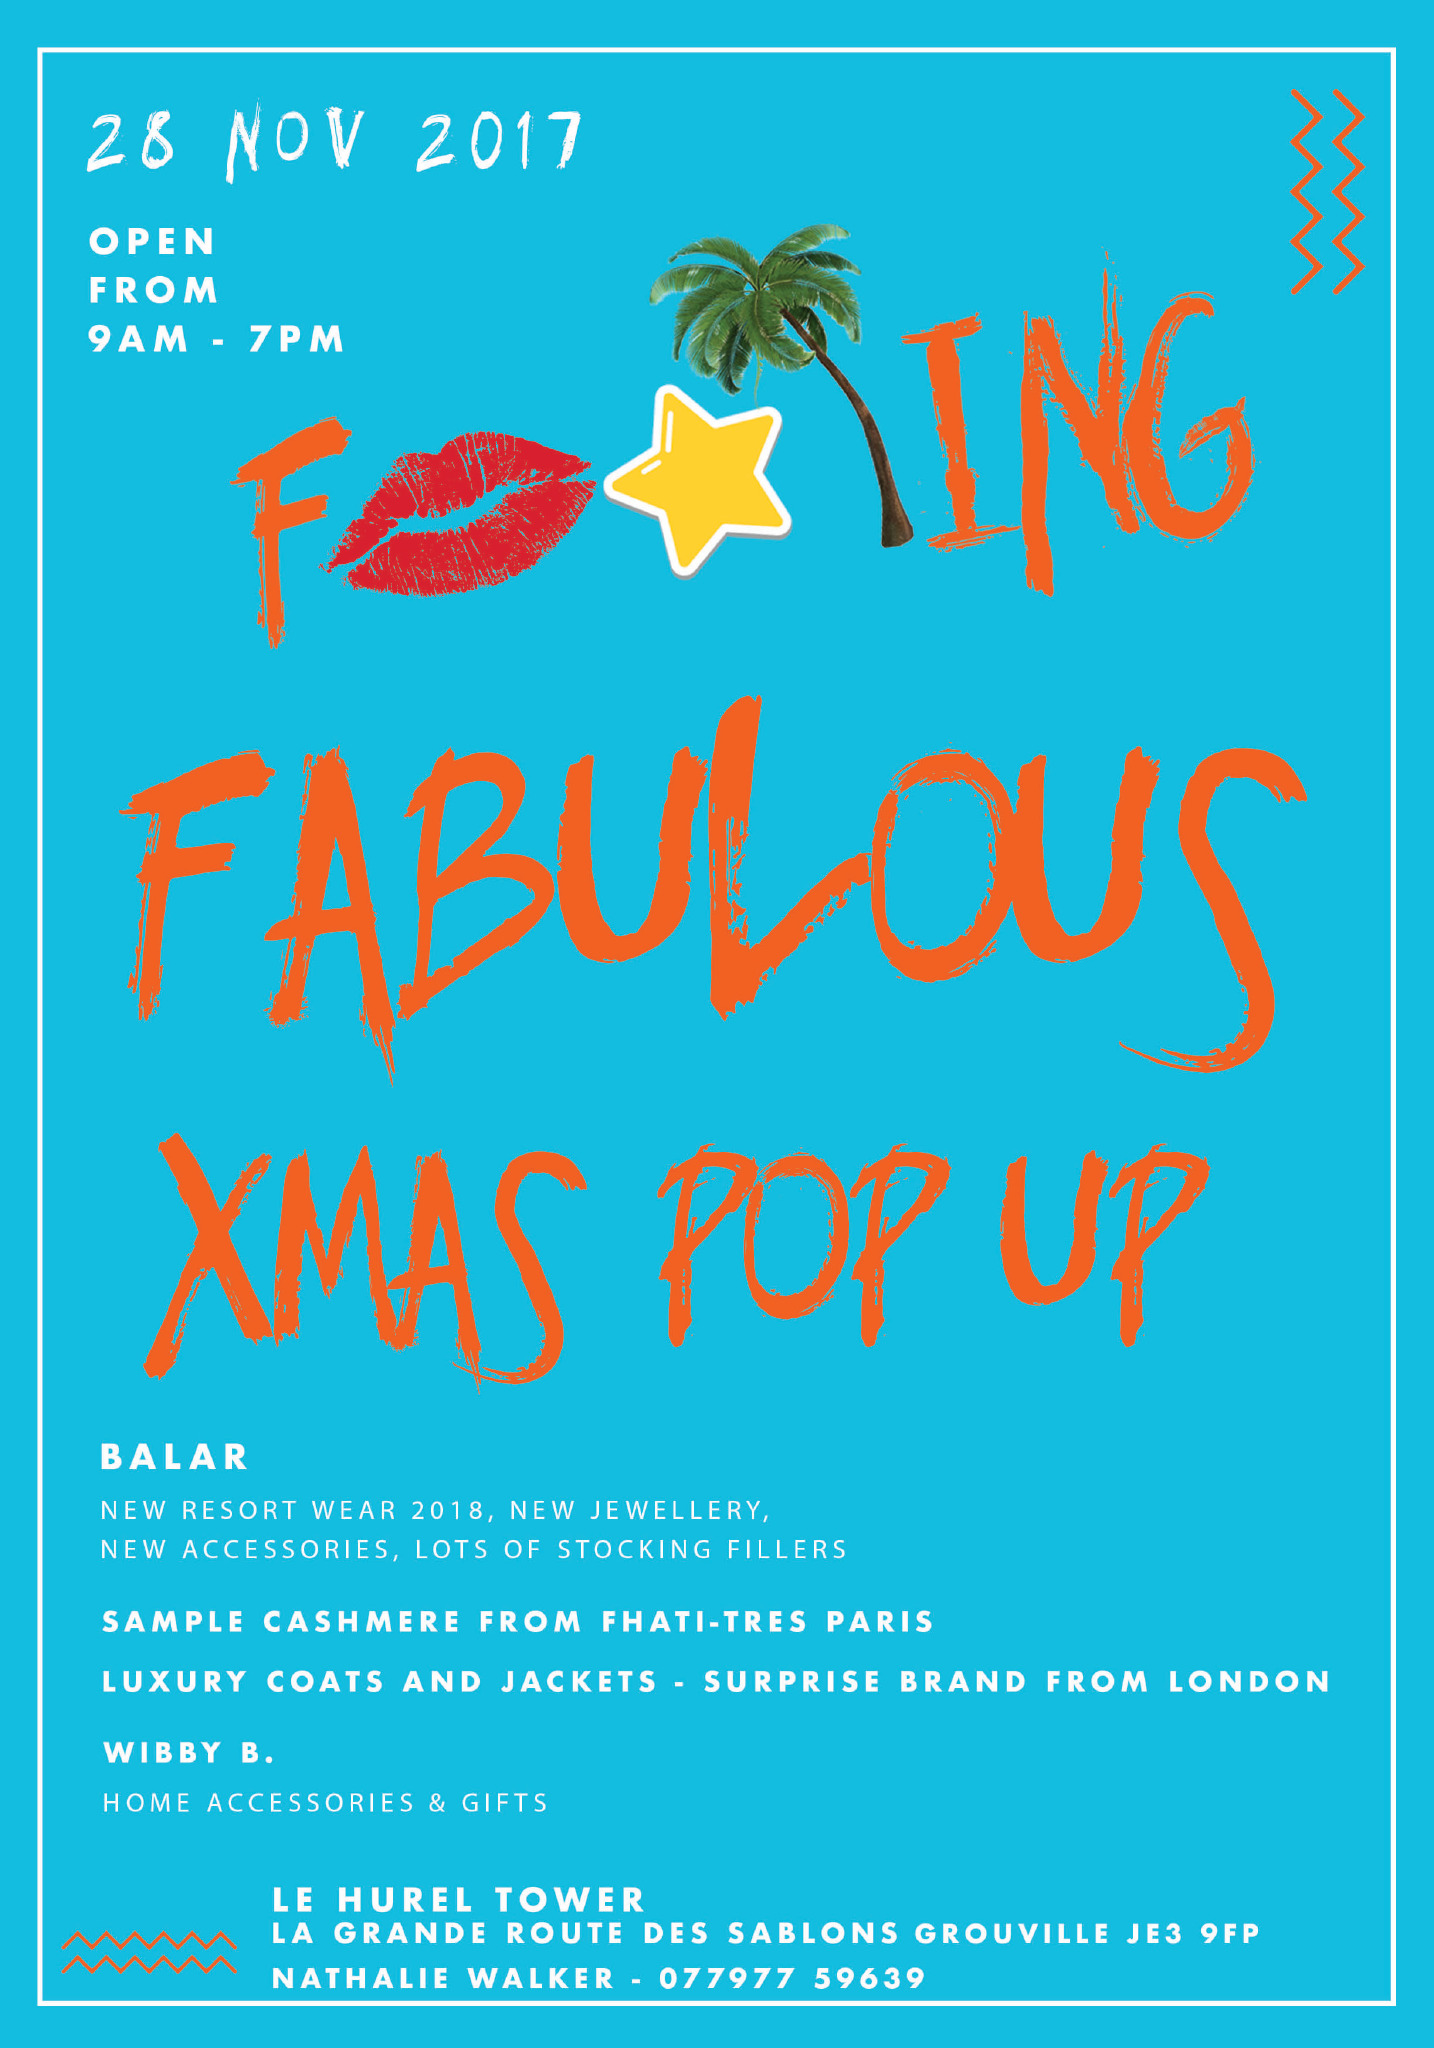 BALAR XMAS POP UP 18_preview.jpg